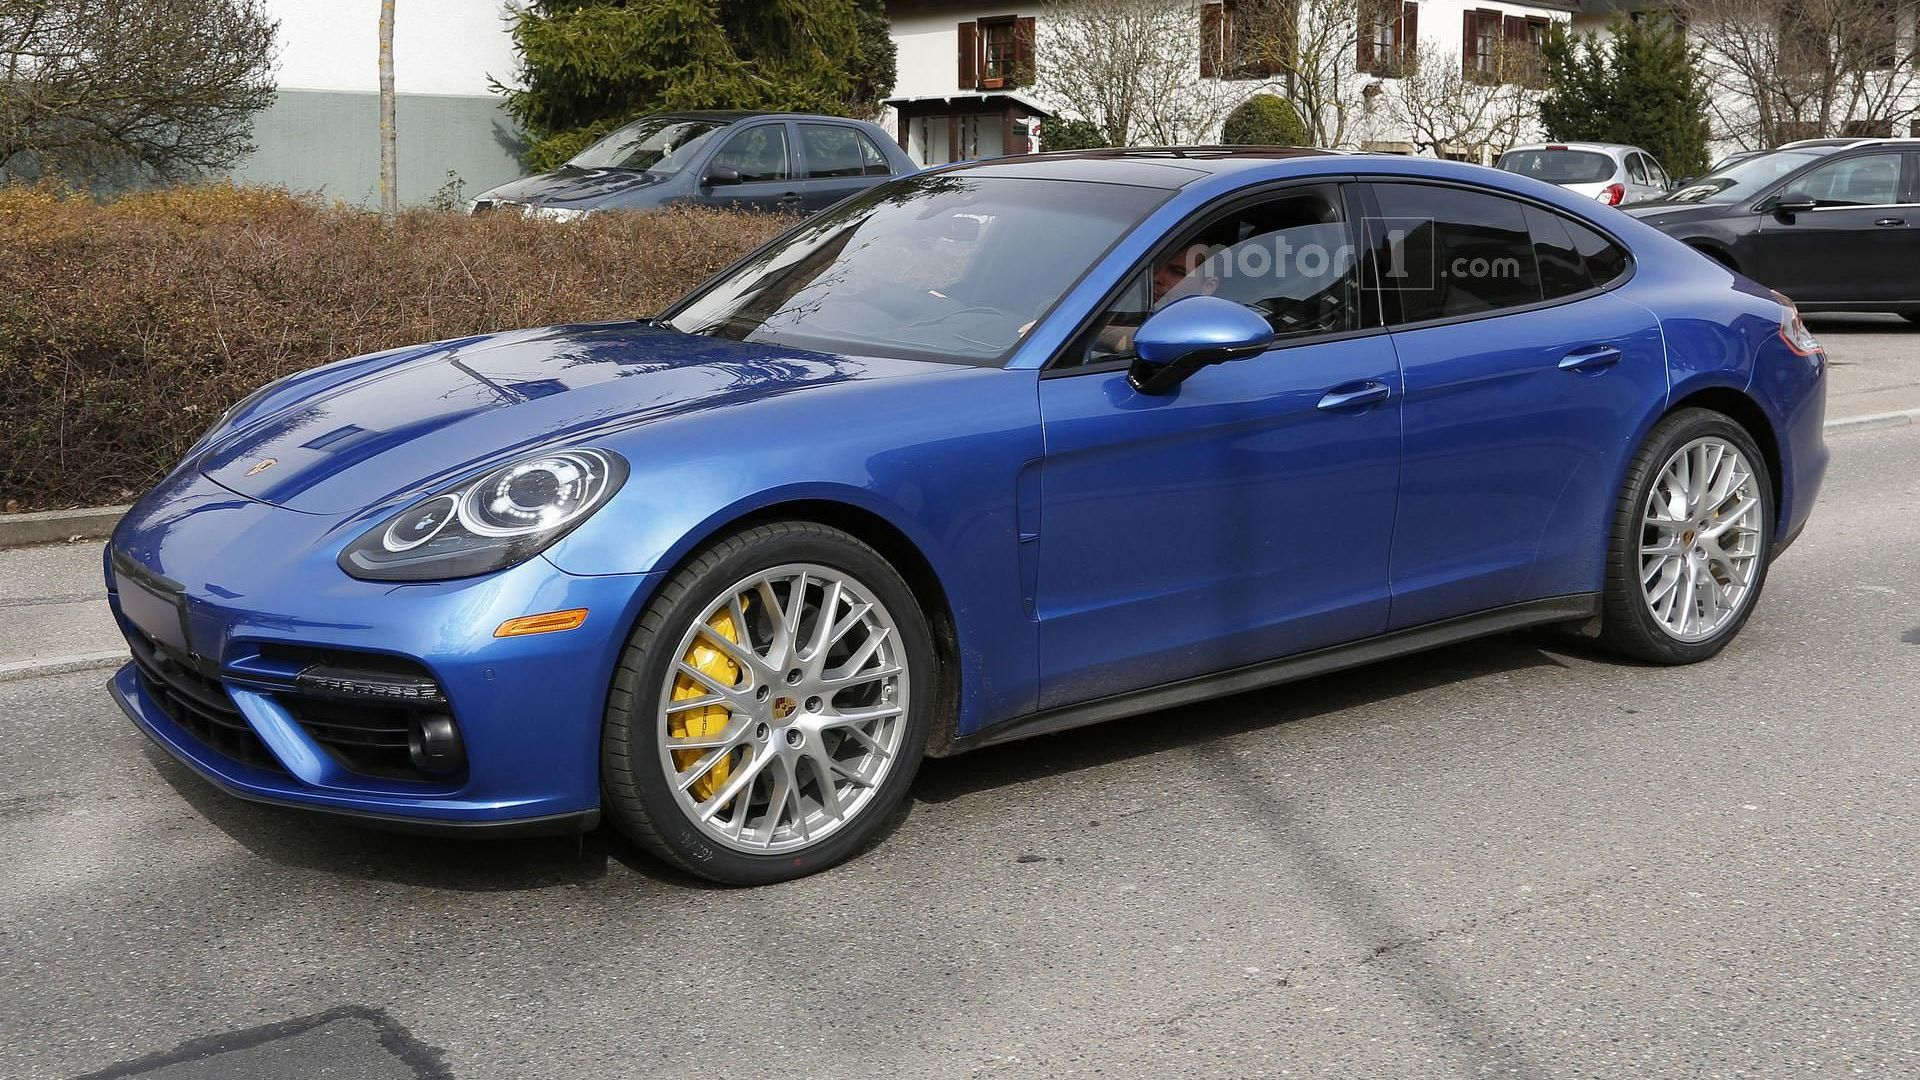 2017 Porsche Panamera Turbo spied alongside the standard model ...